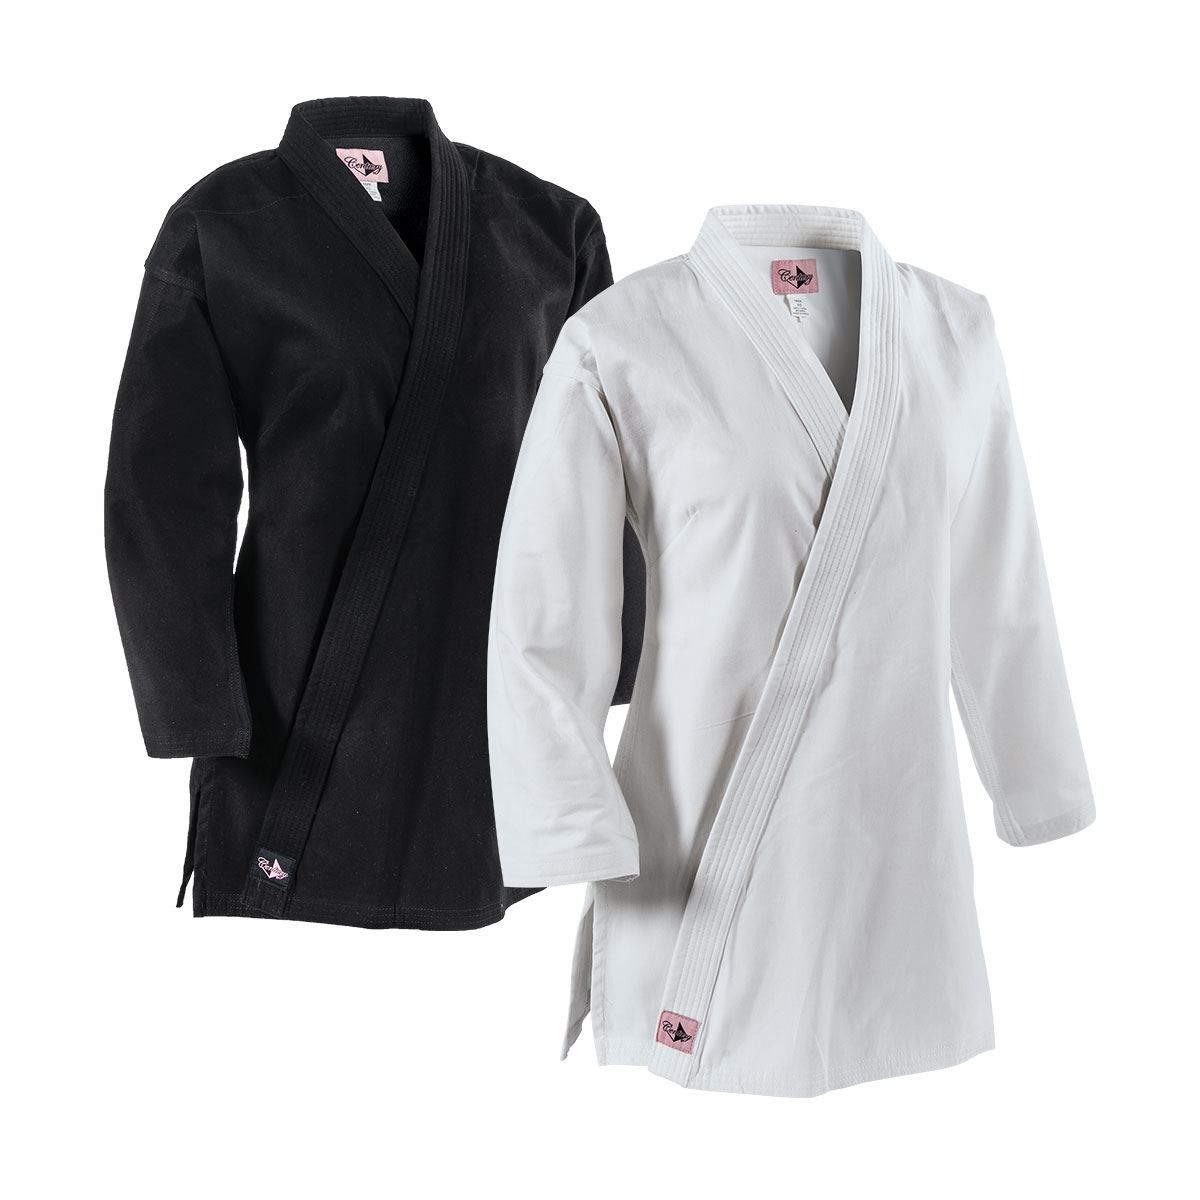 10 oz. Womens Extended Length Traditional Karate Jacket